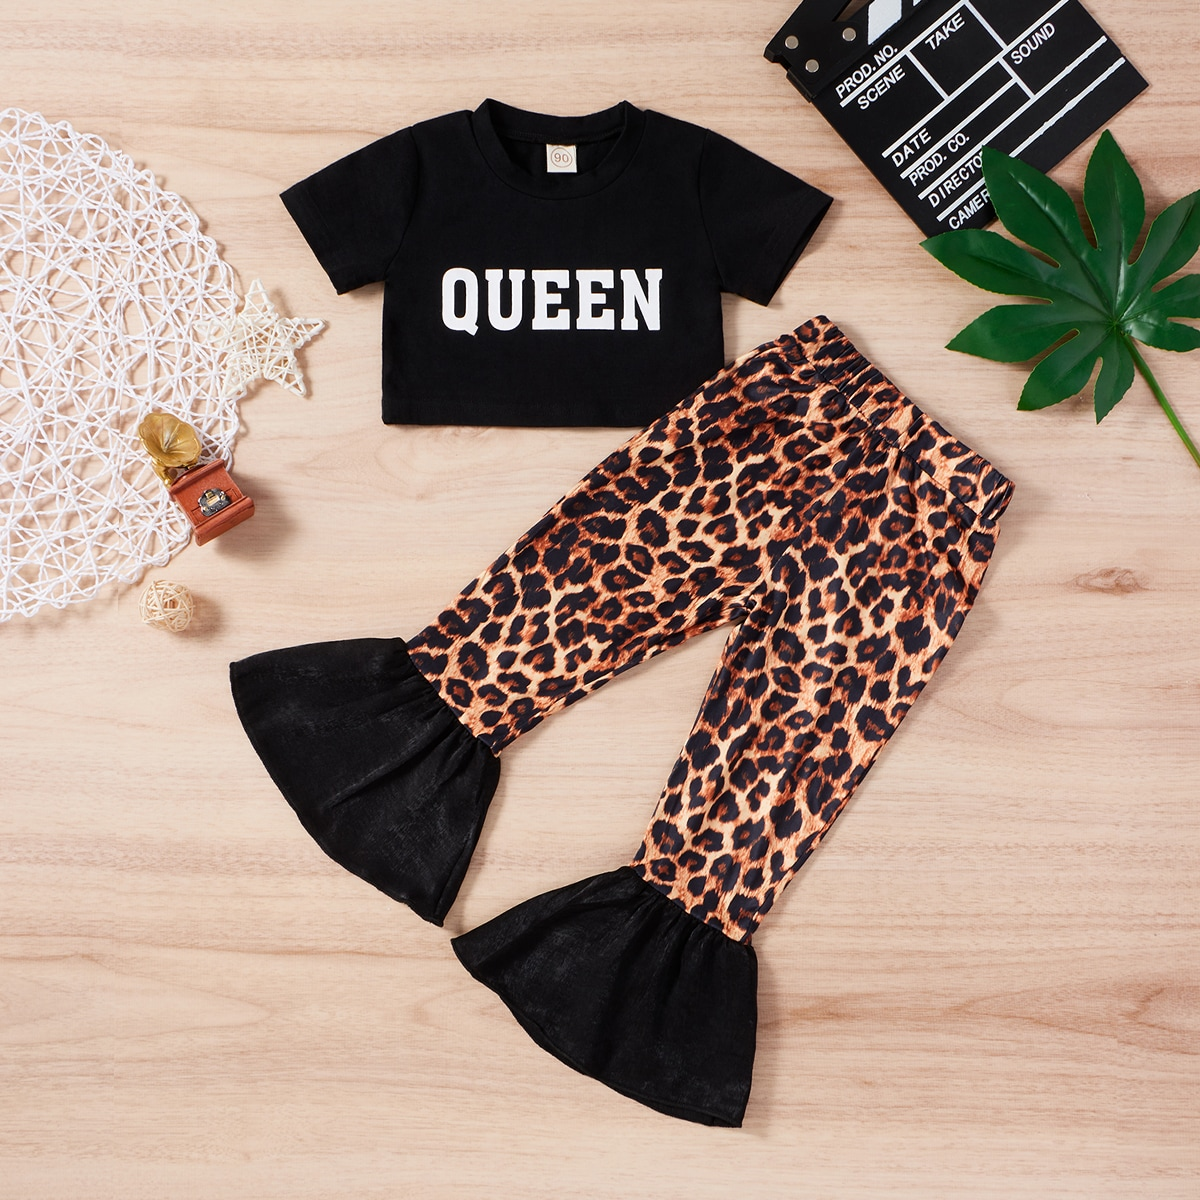 Toddler Girls Letter Graphic Tee With Leopard Flare Leg Pants